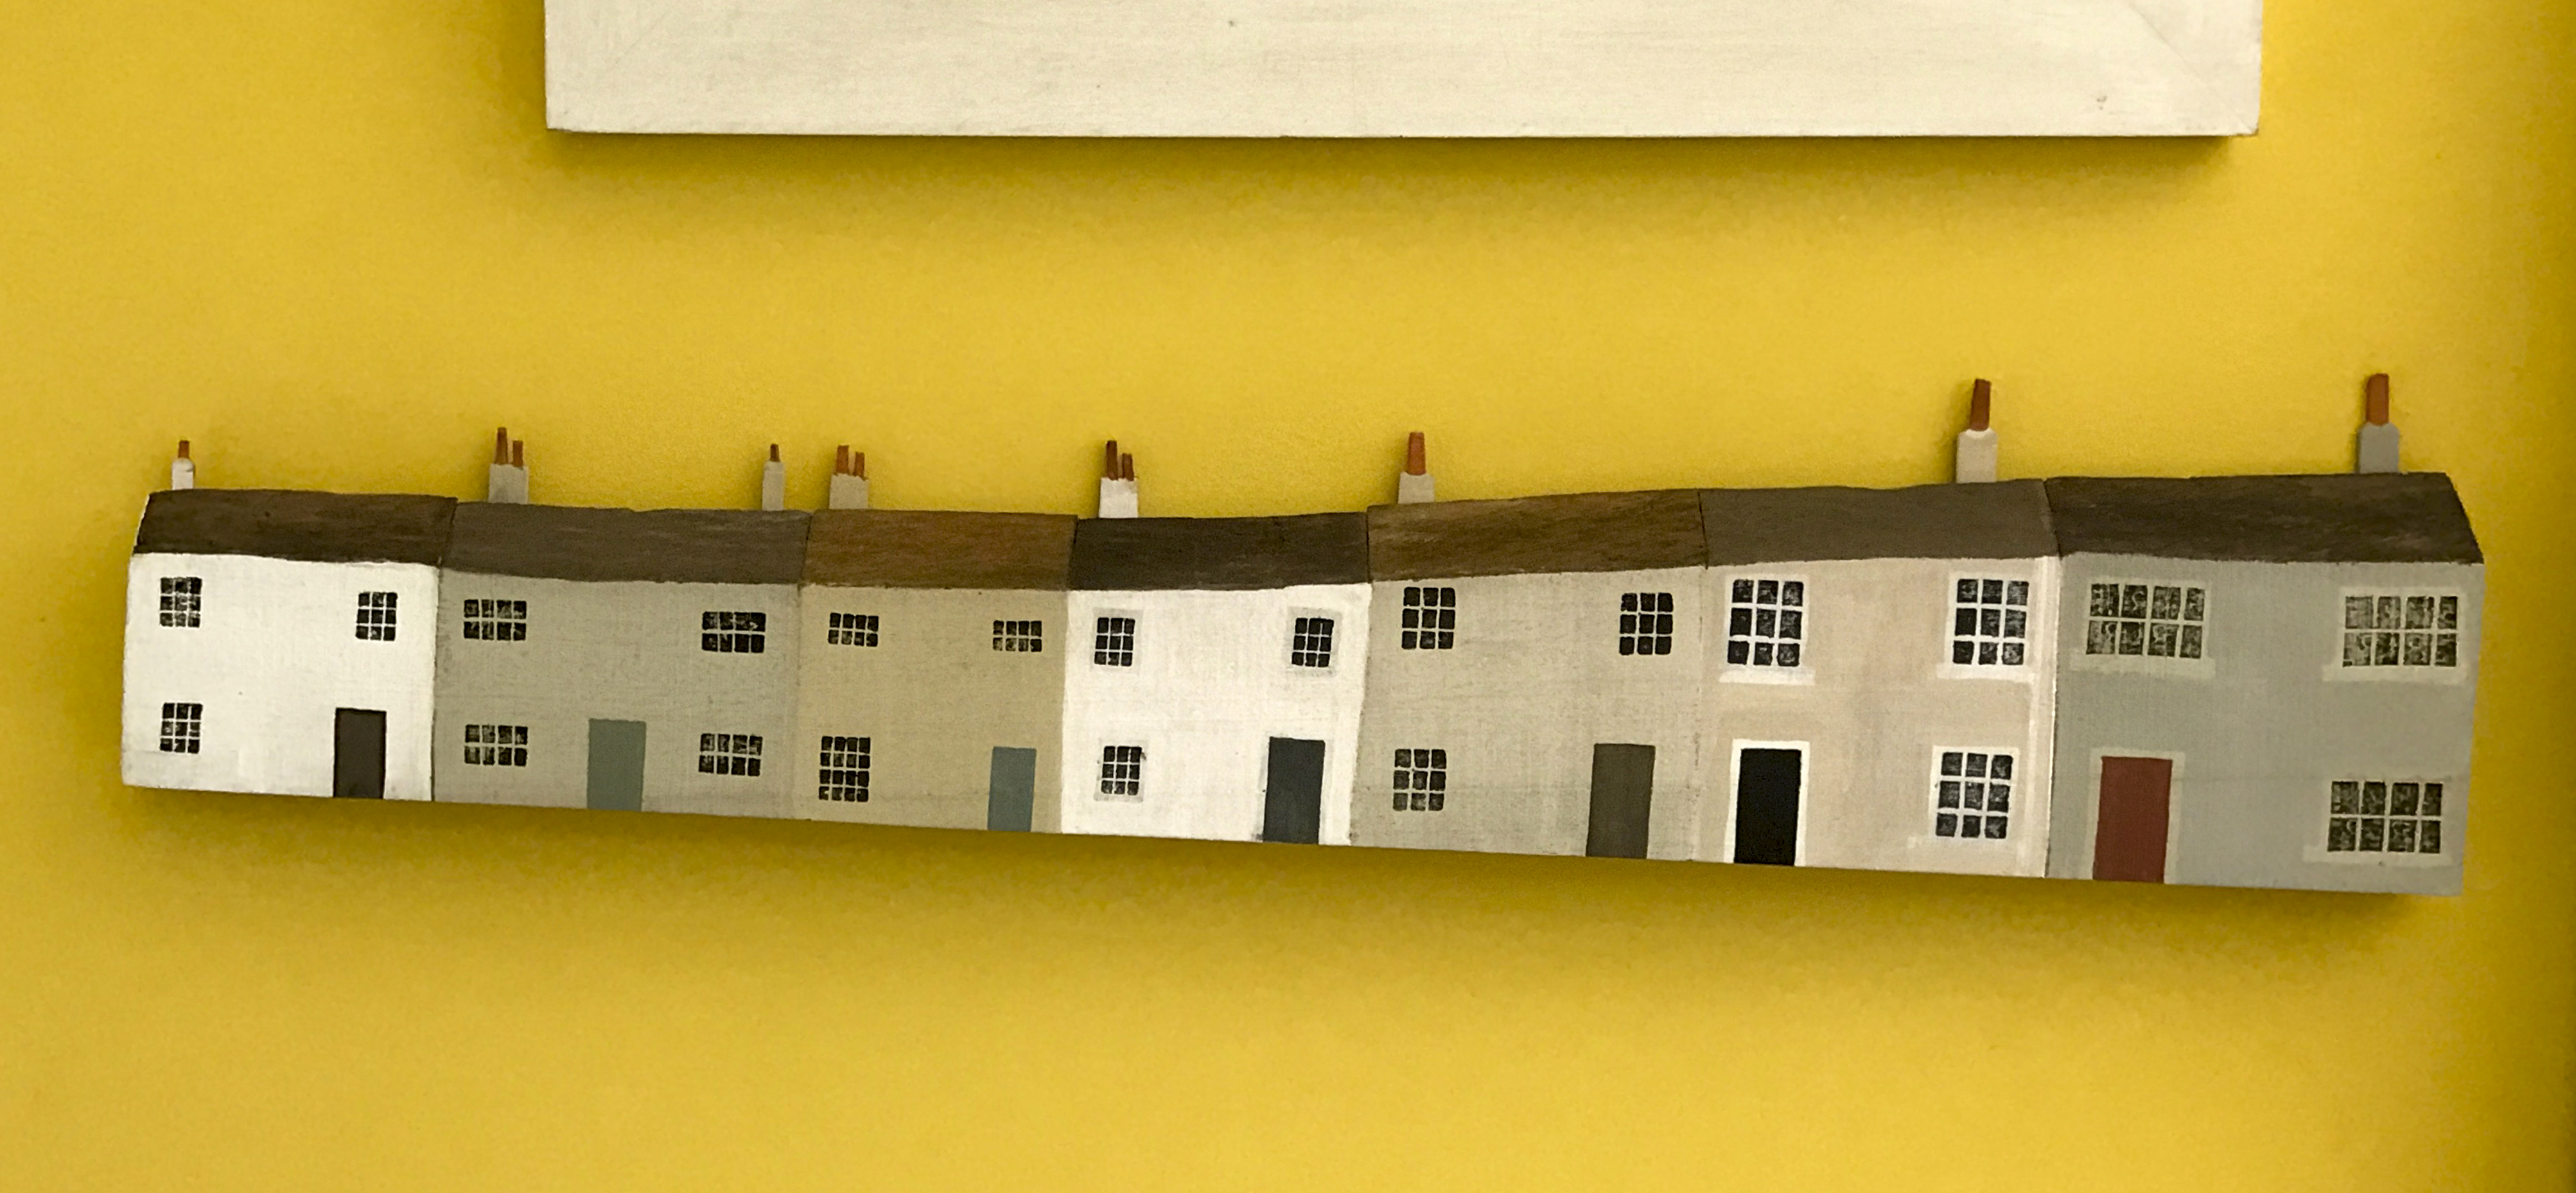 Artwork of terraced houses by Victor Stuart Graham hung on bright yellow wall